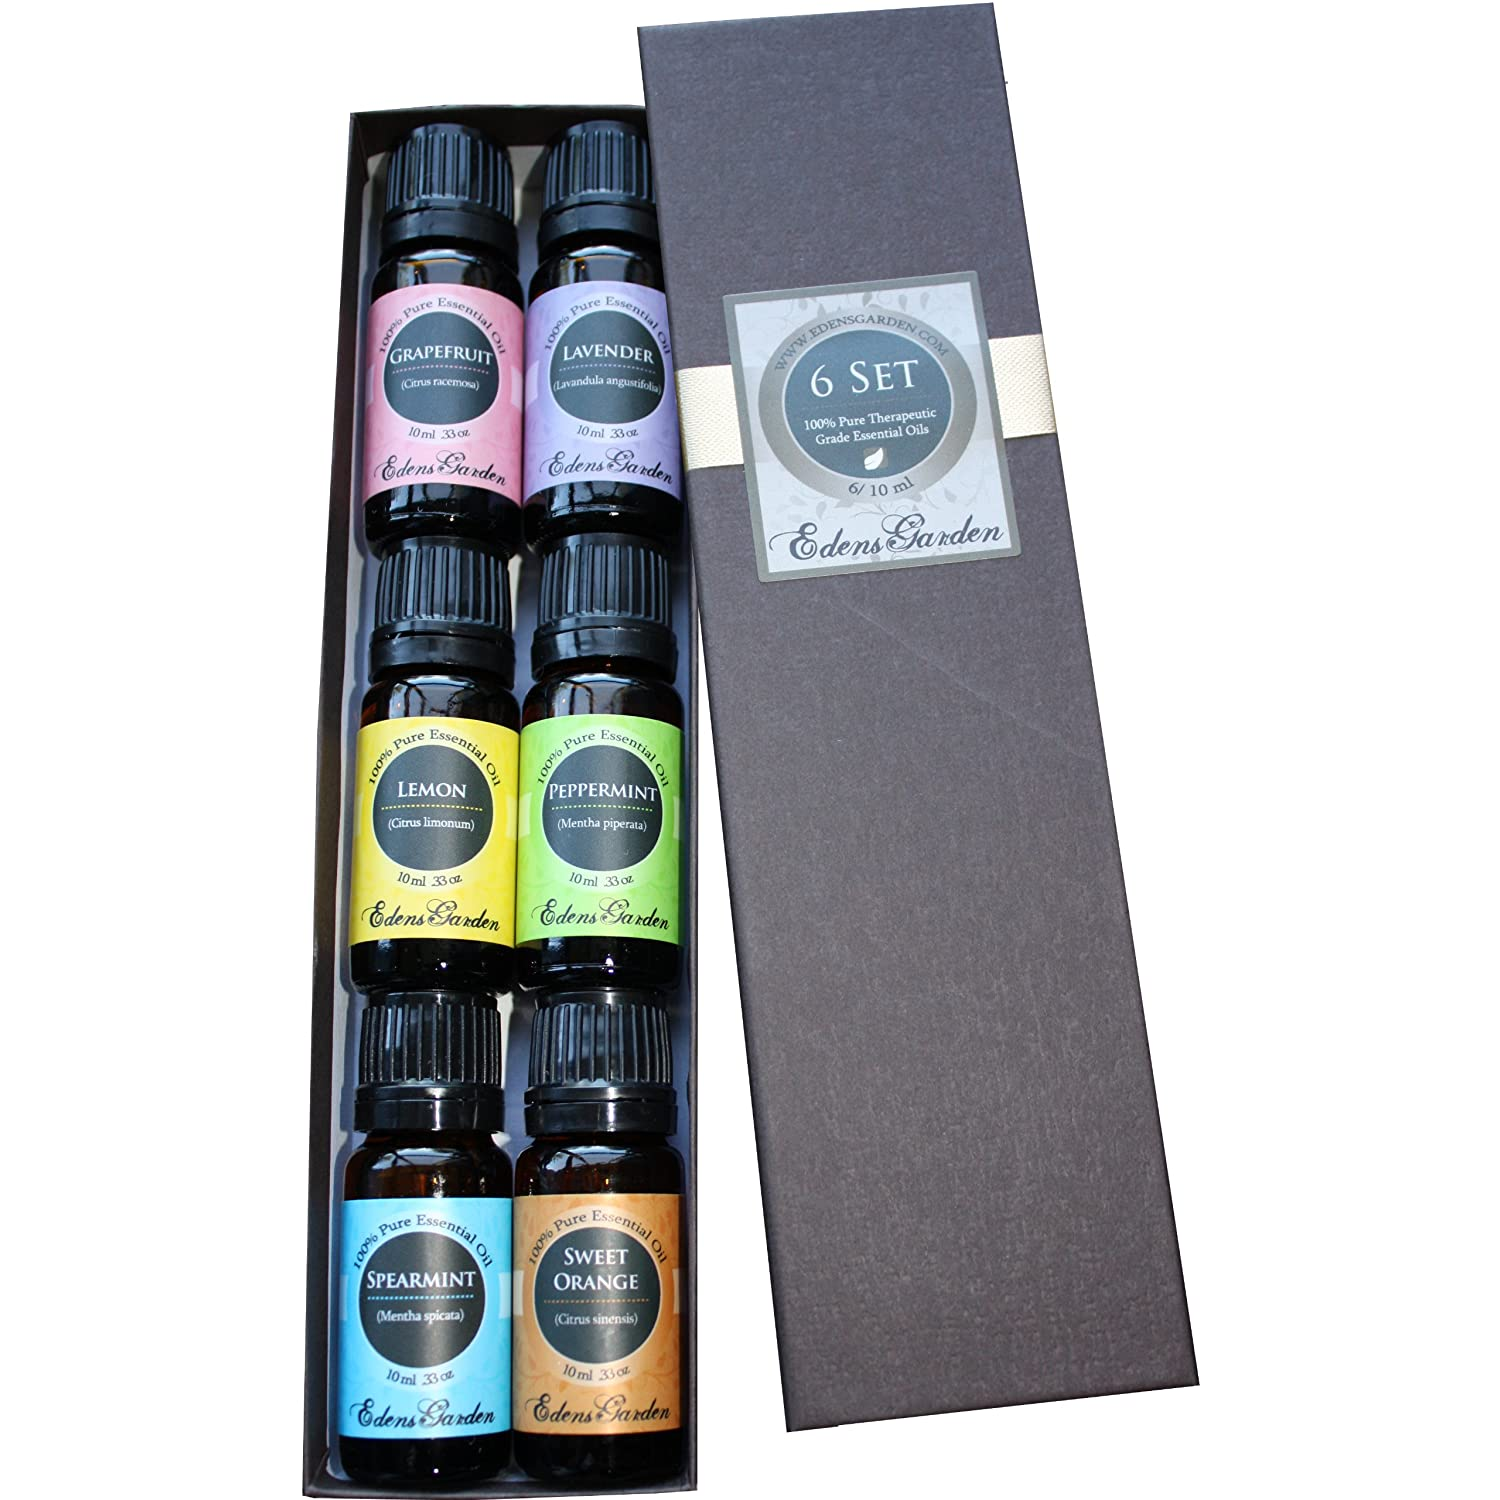 Essential Oil Home Aromatherapy Sampler Set- 6/10 ml. (Grapefruit, Lavender, Lemon, Peppermint, Spearmint and Sweet Orange) A great gift or a way to sample essential oils